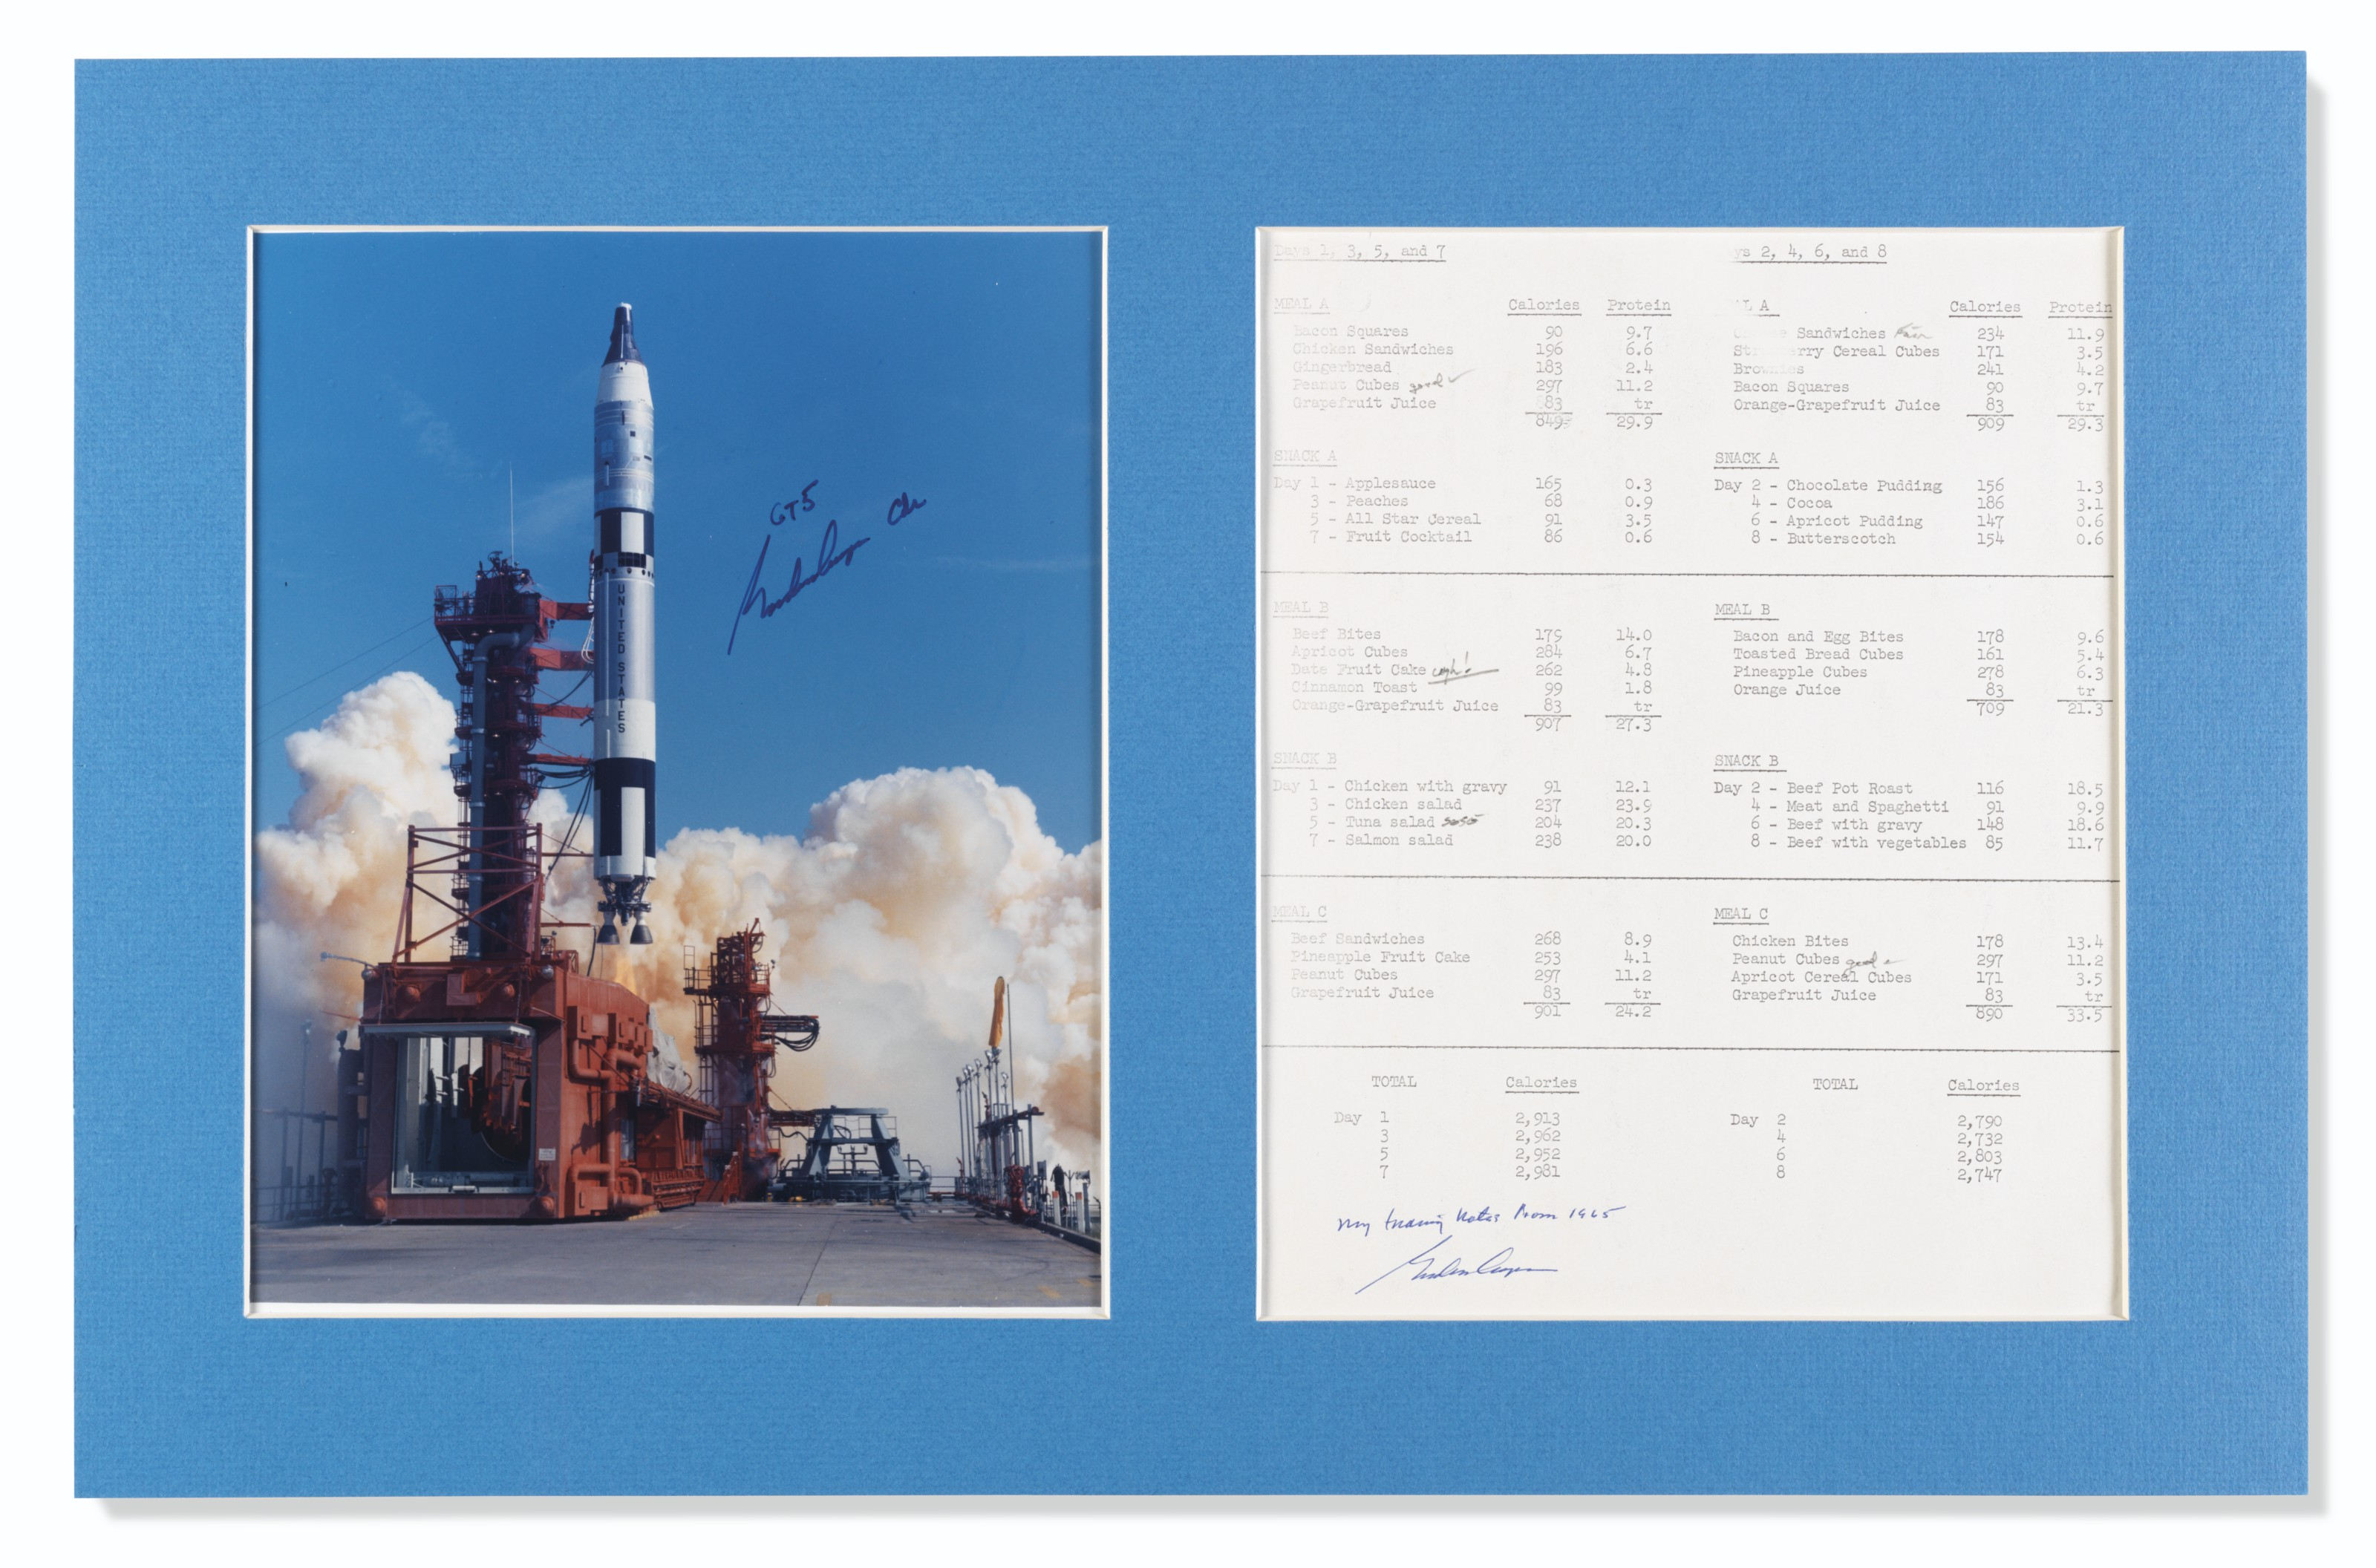 GEMINI 5 TRAINING NOTES – Annotated meal schedule, 1965.